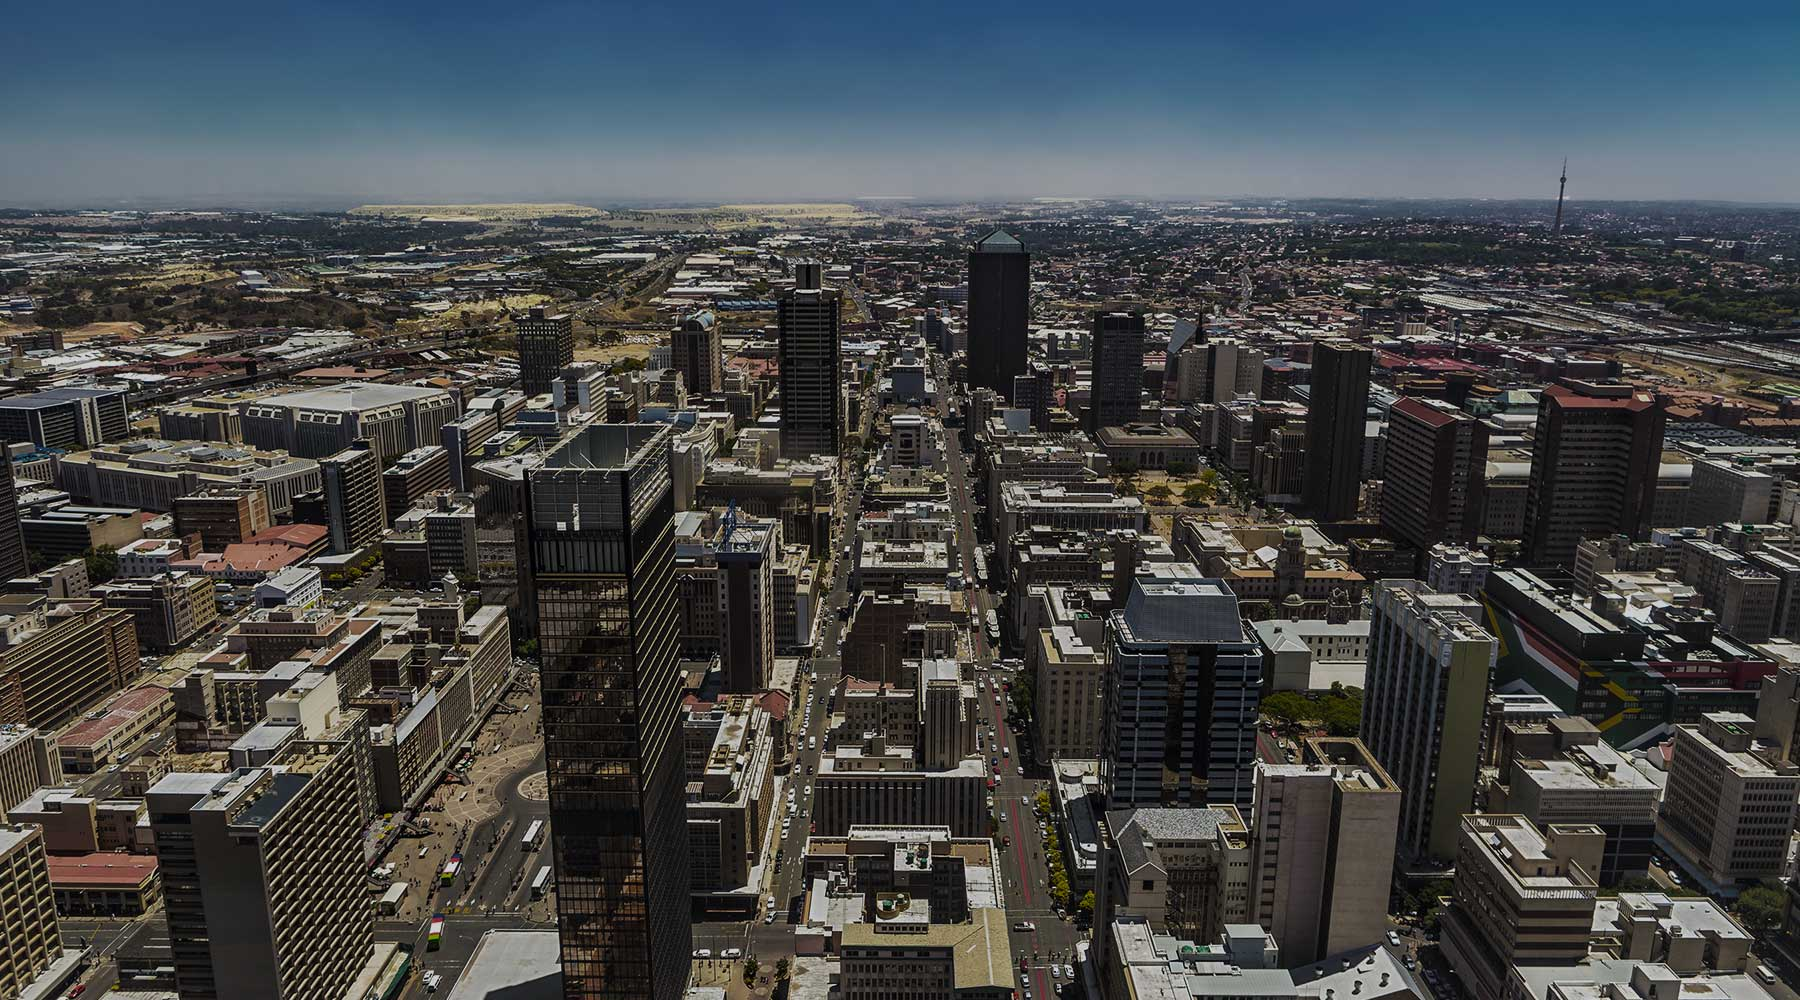 City scape from a drone